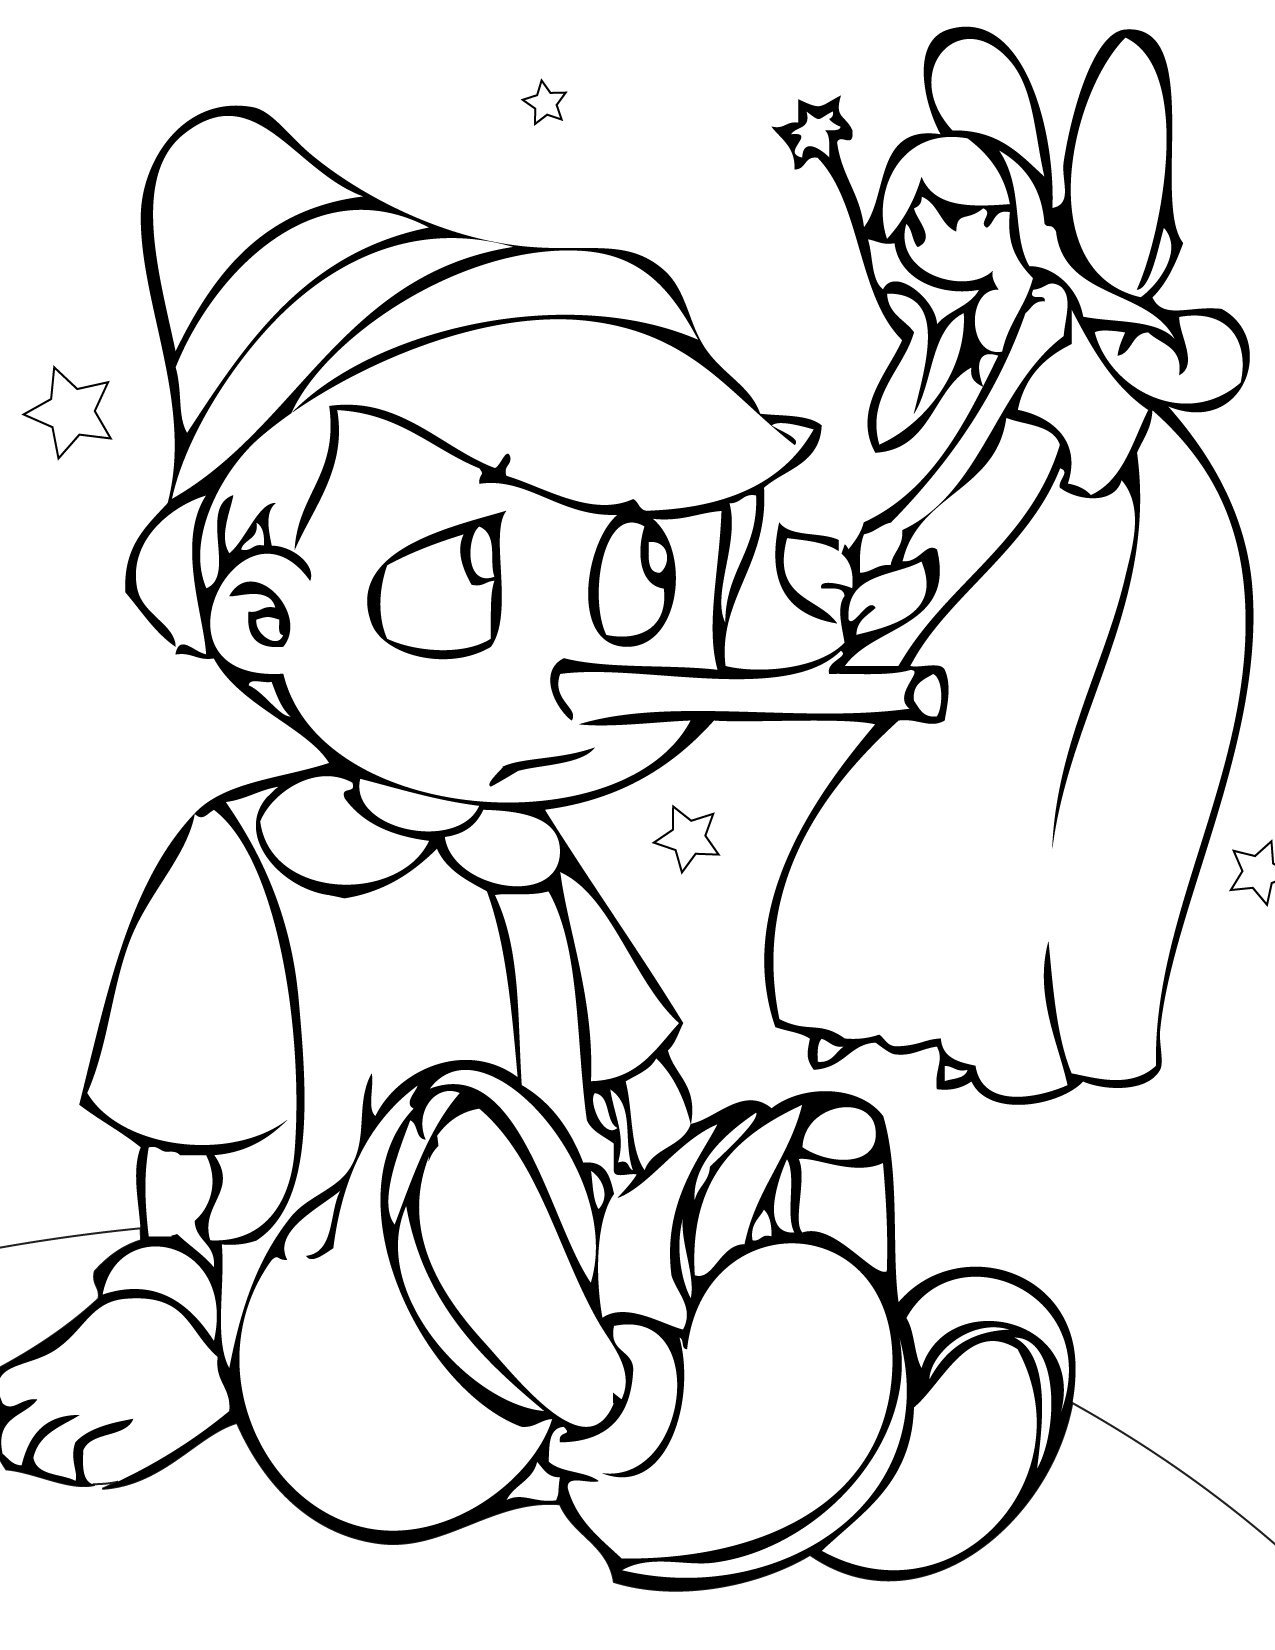 Printable Coloring Worksheets : Free printable pinocchio coloring pages for kids